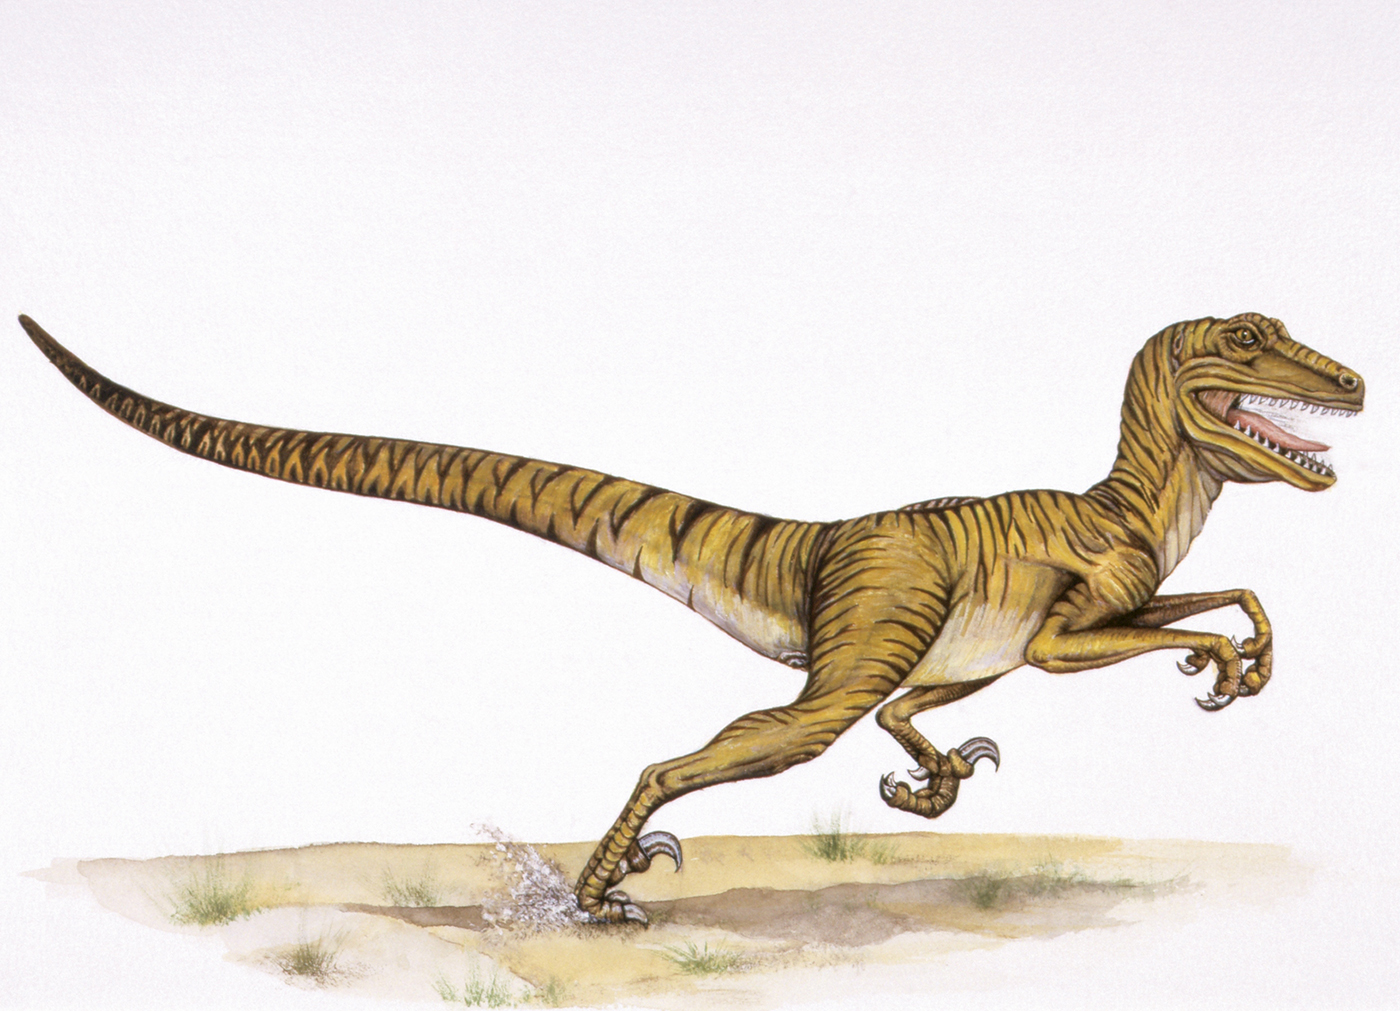 Illustration of a Deinonychus. (Credit: De Agostini Picture Library/Getty Images)